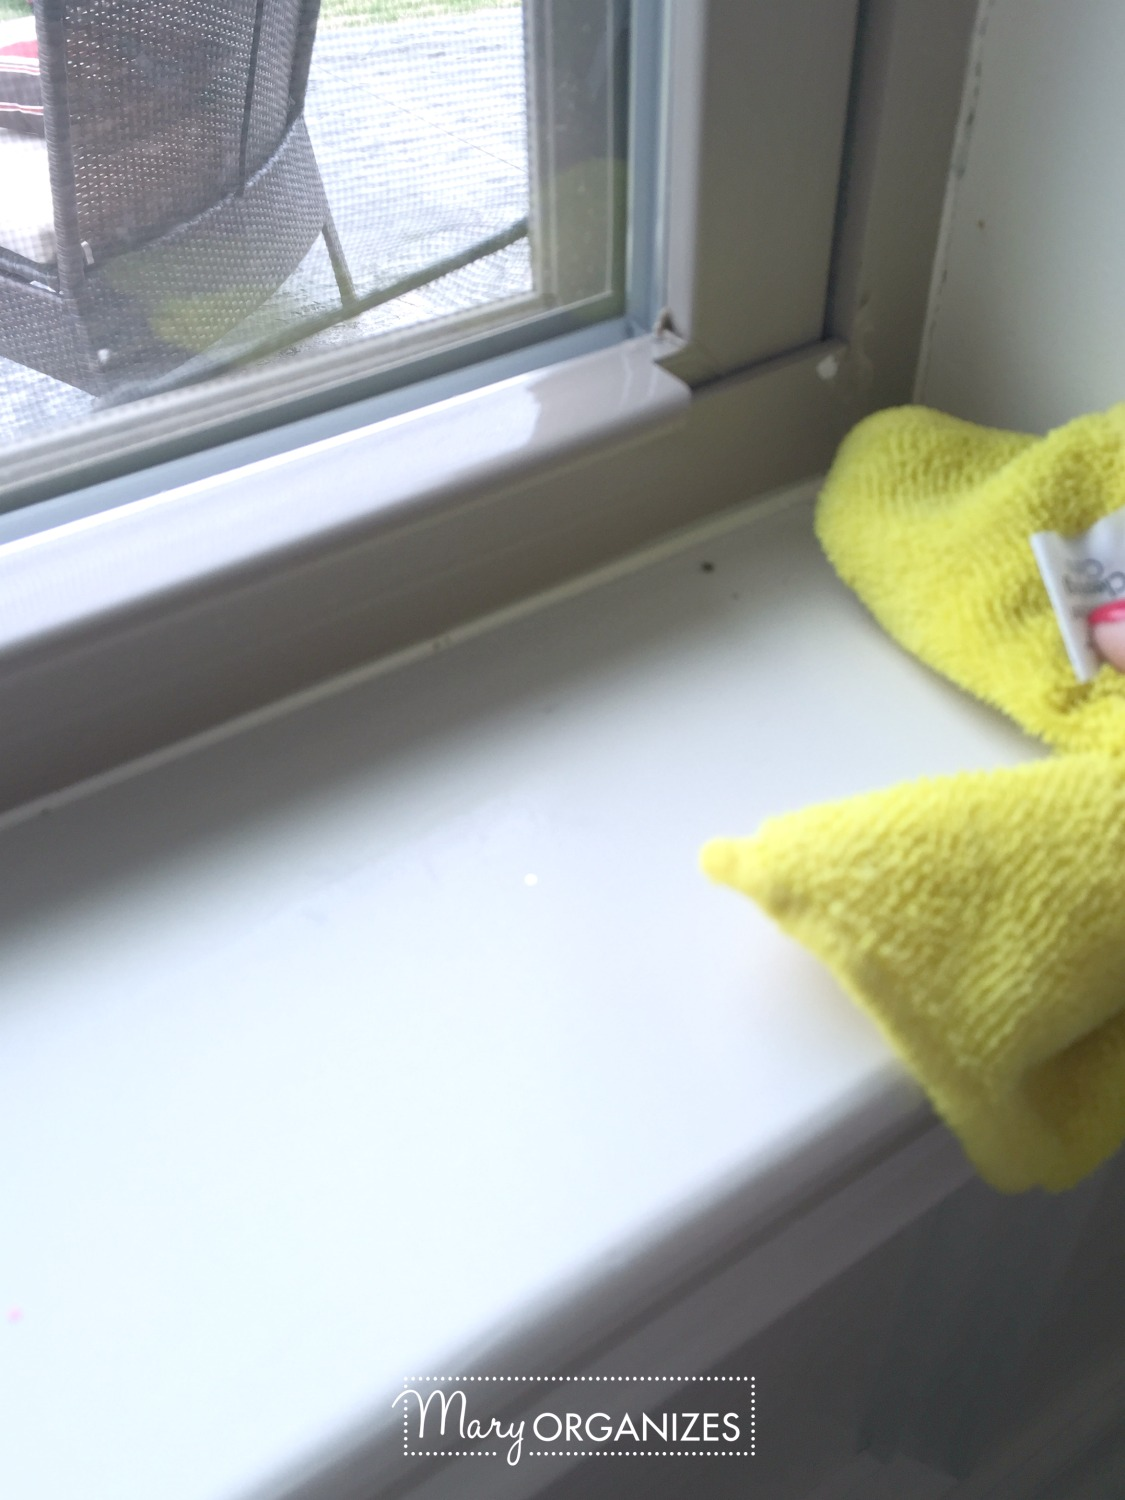 Two Ways To Clean Windows - wipe the window sill -v